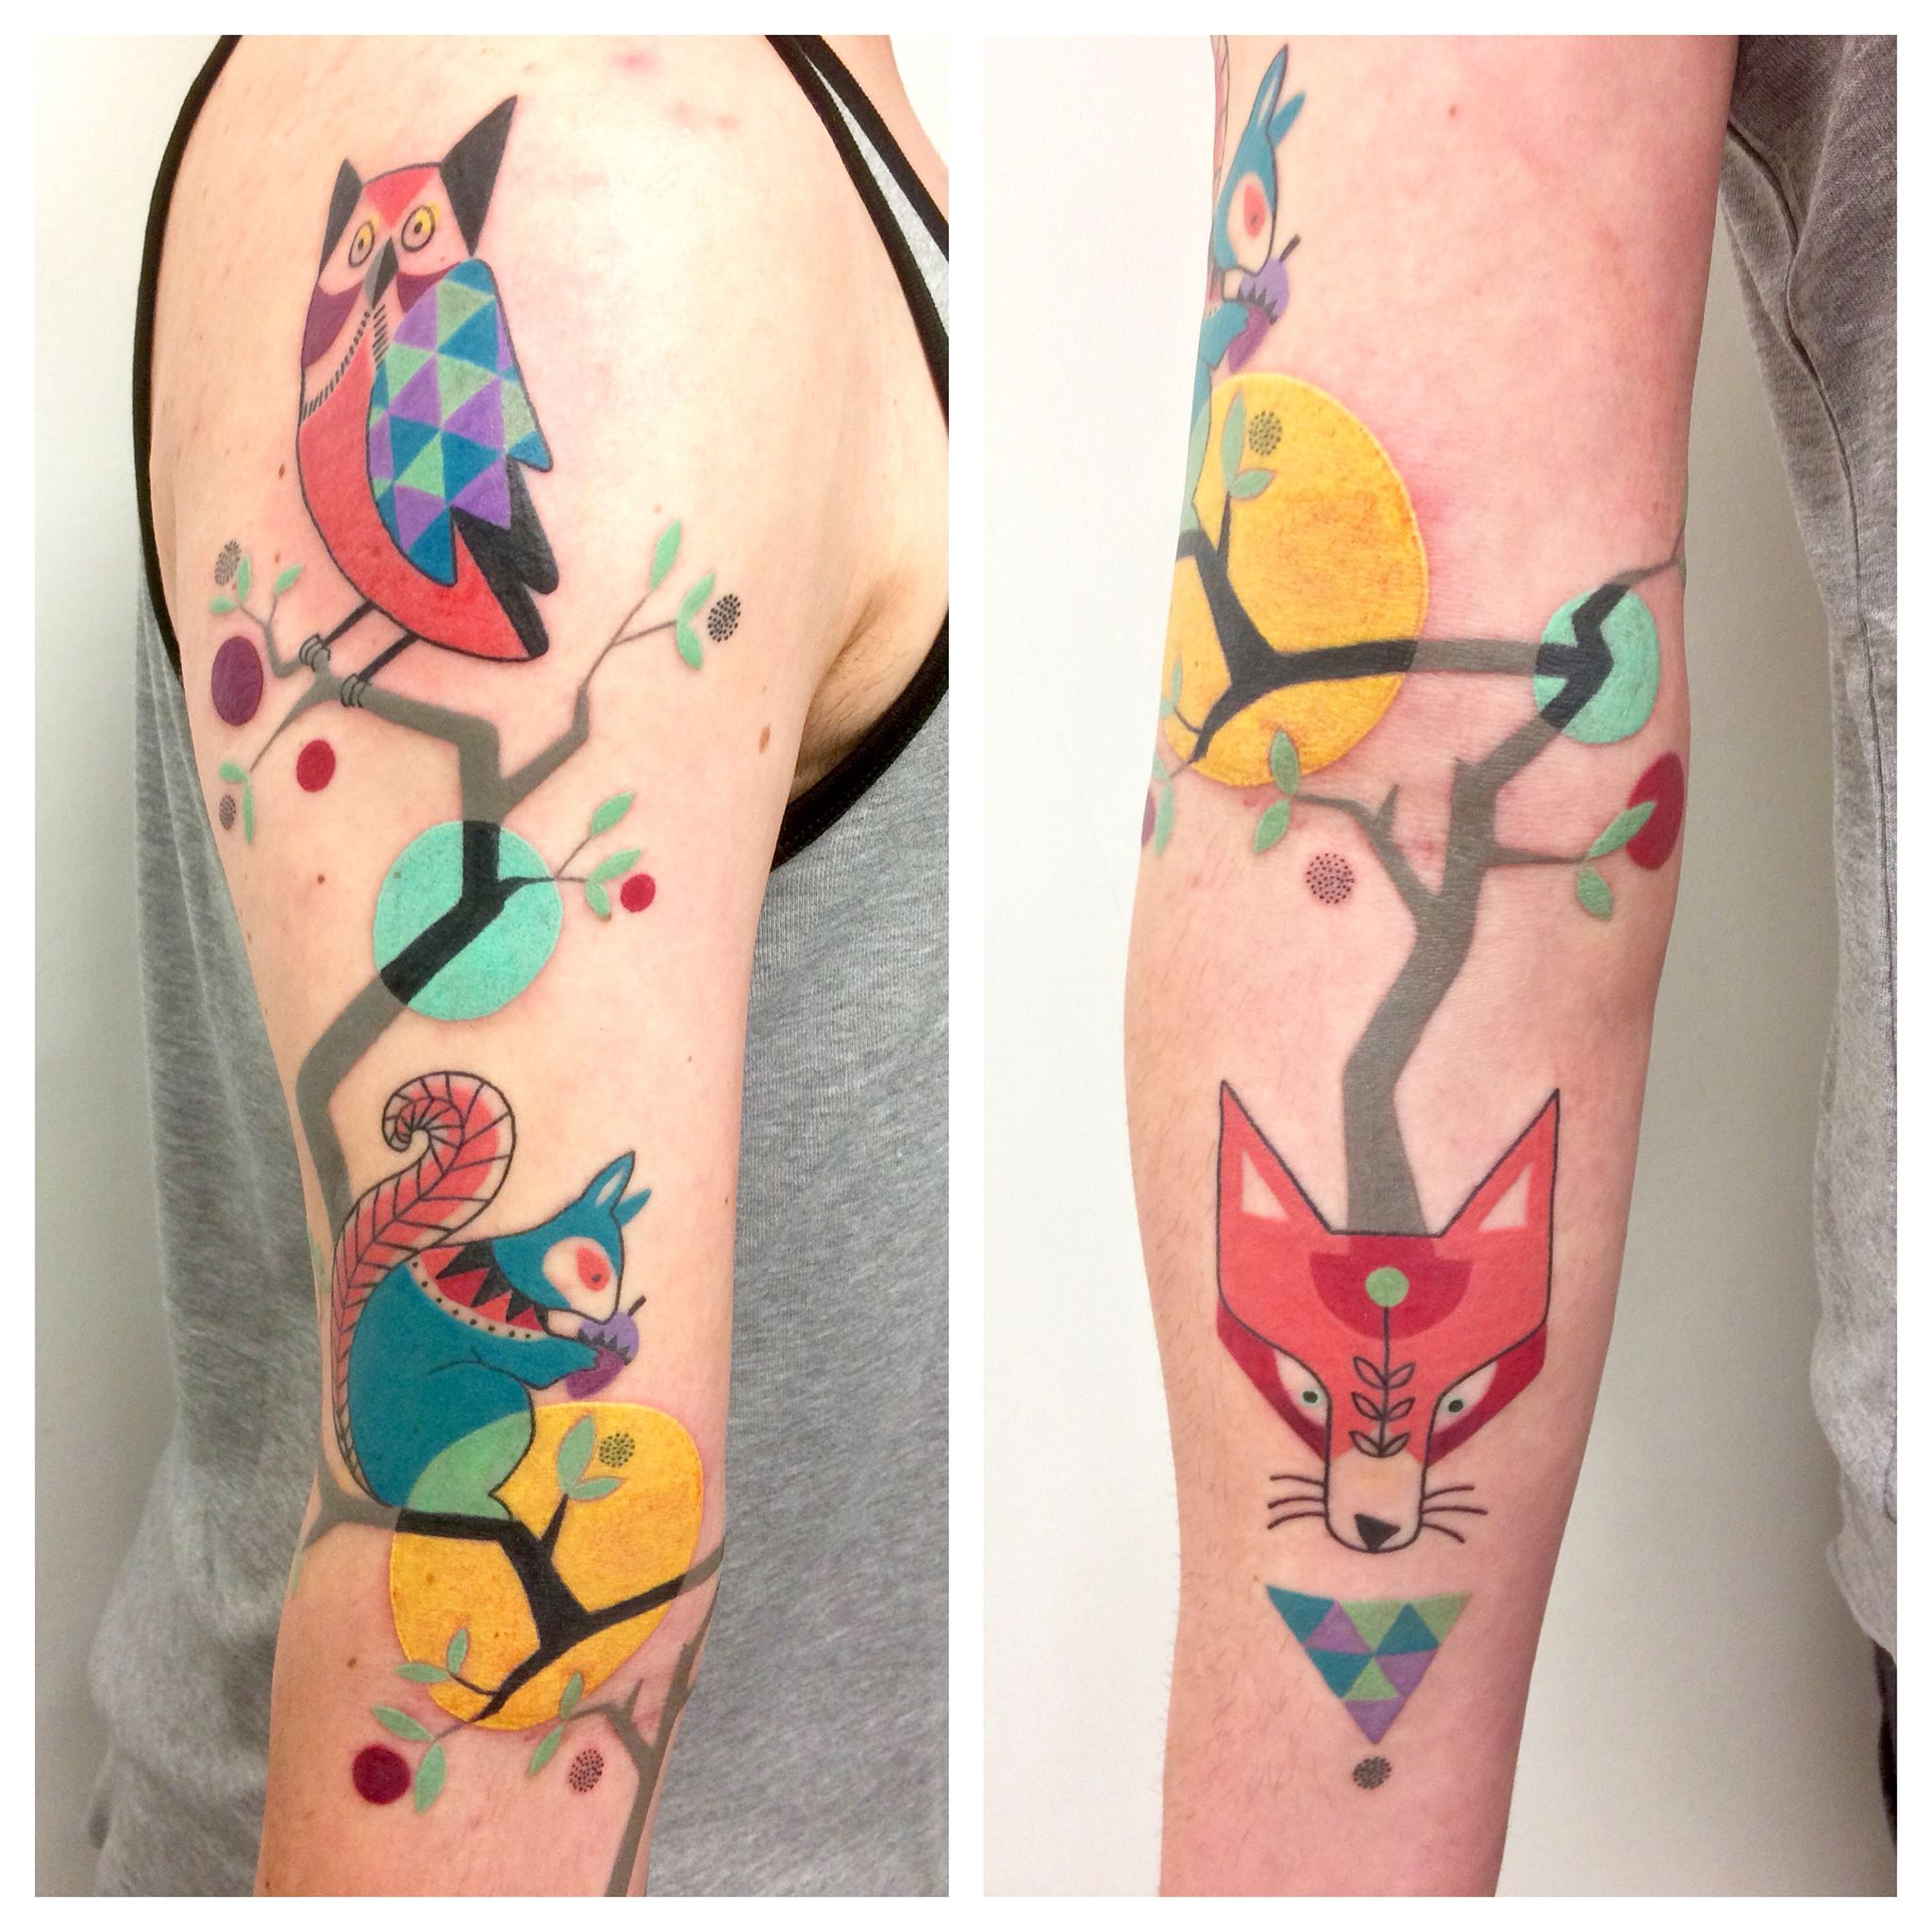 A squirrel, an owl and a fox feature in this colourful